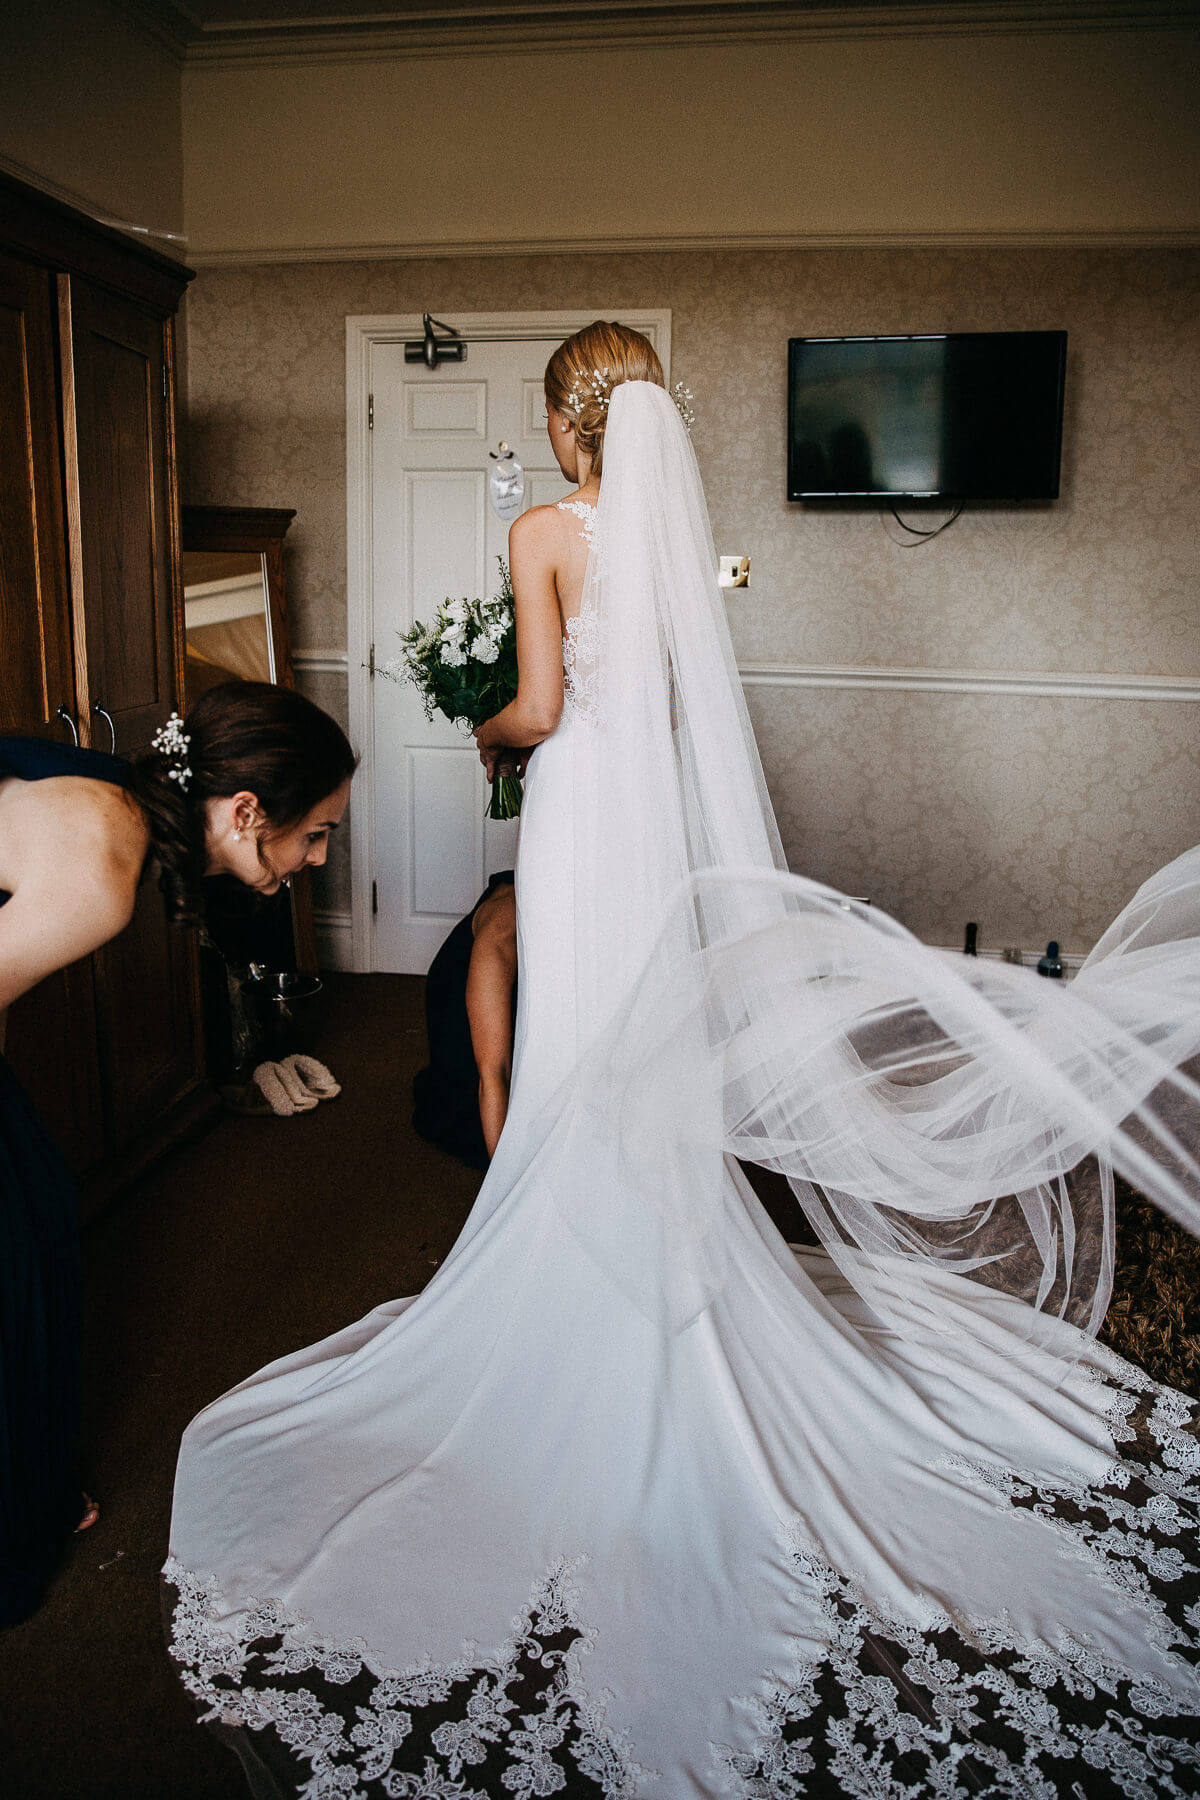 Silk wedding dress and veil